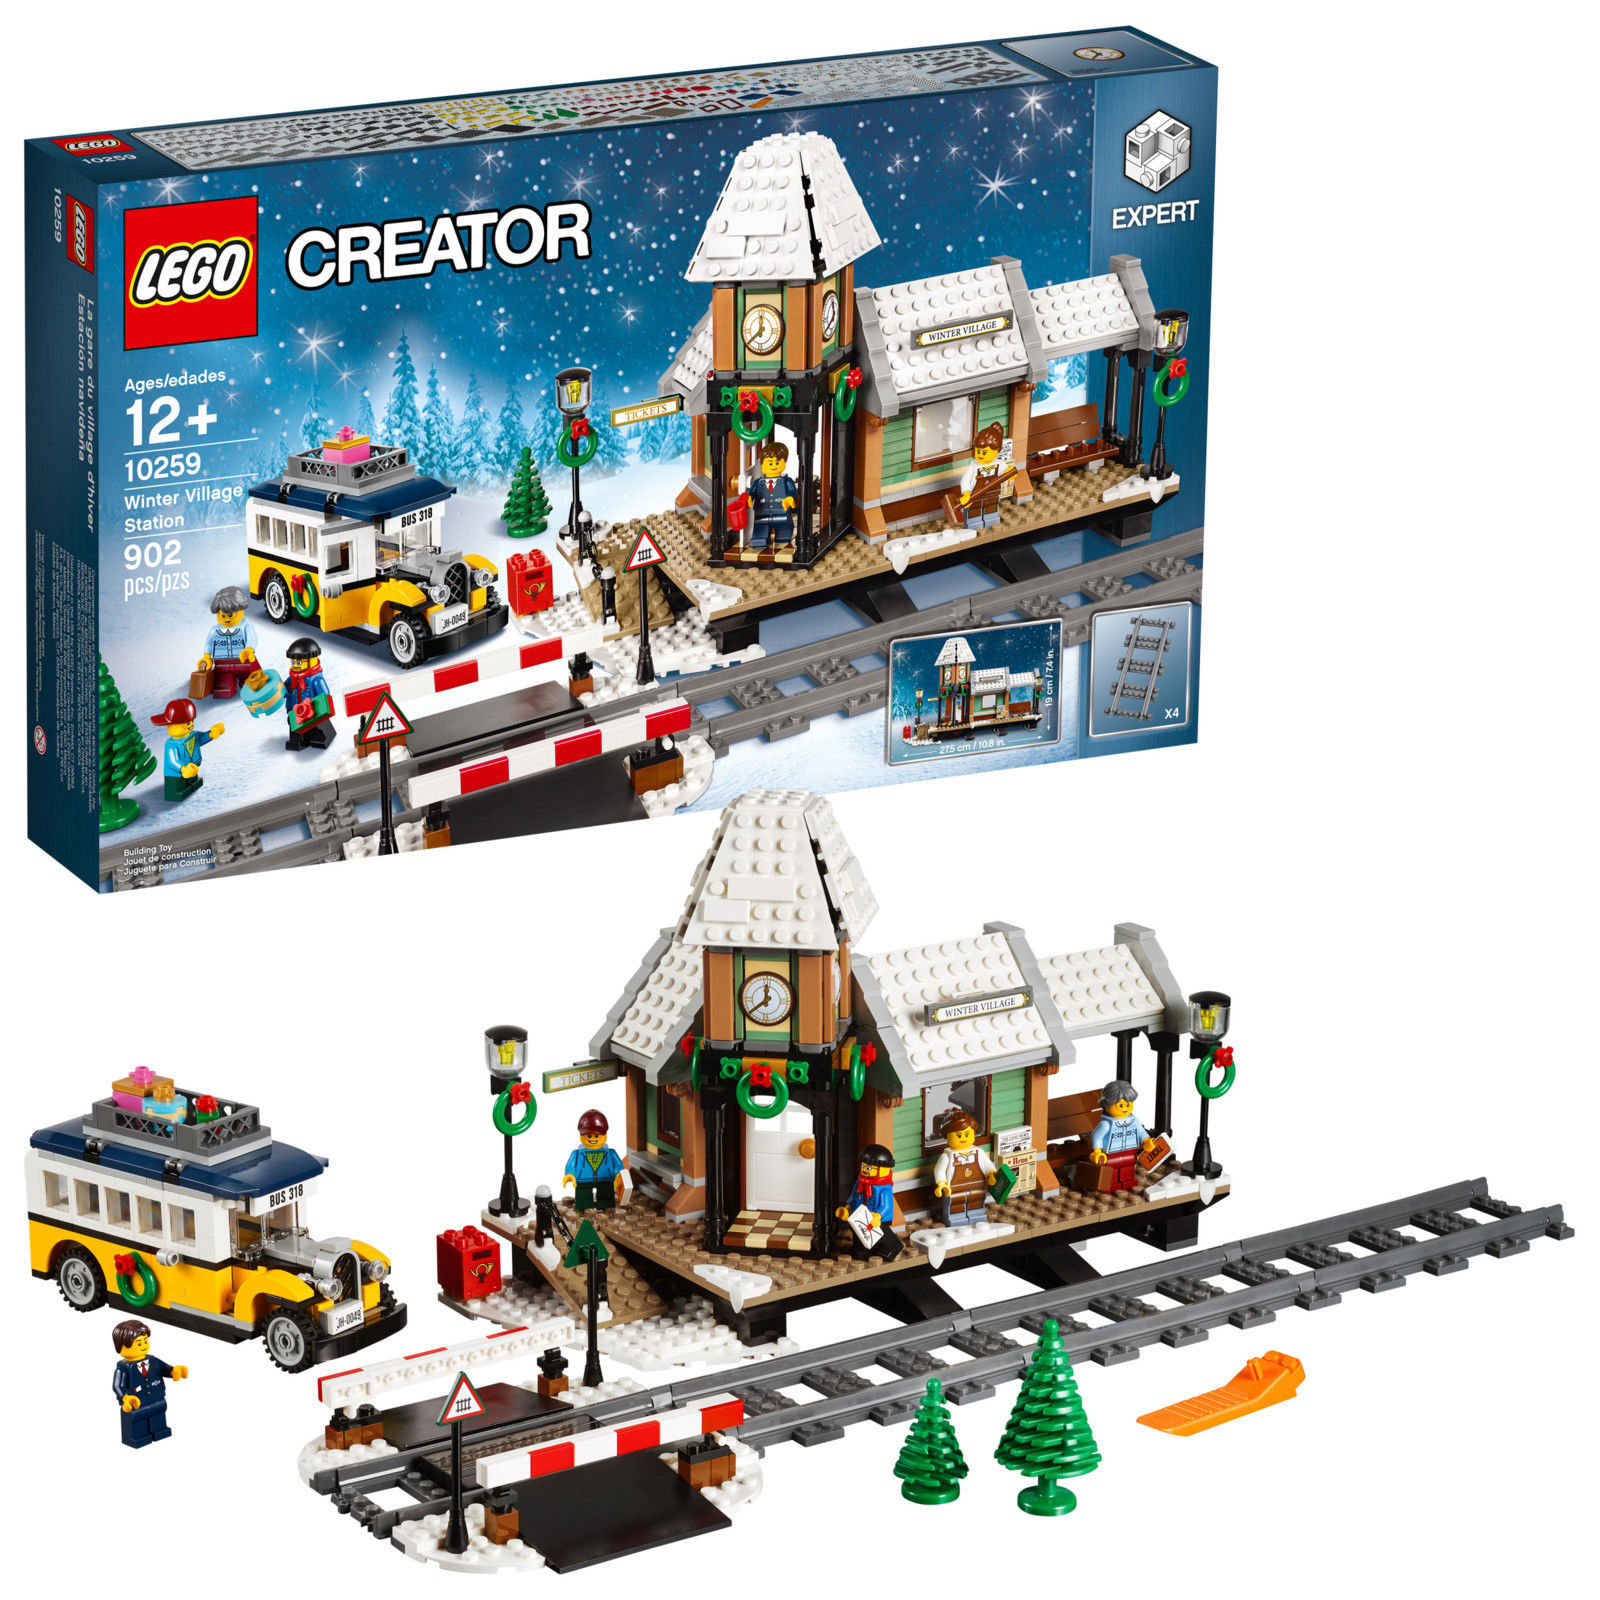 LEGO Creator Expert Winter Village Station 10259 Christmas [NEW] Building Set